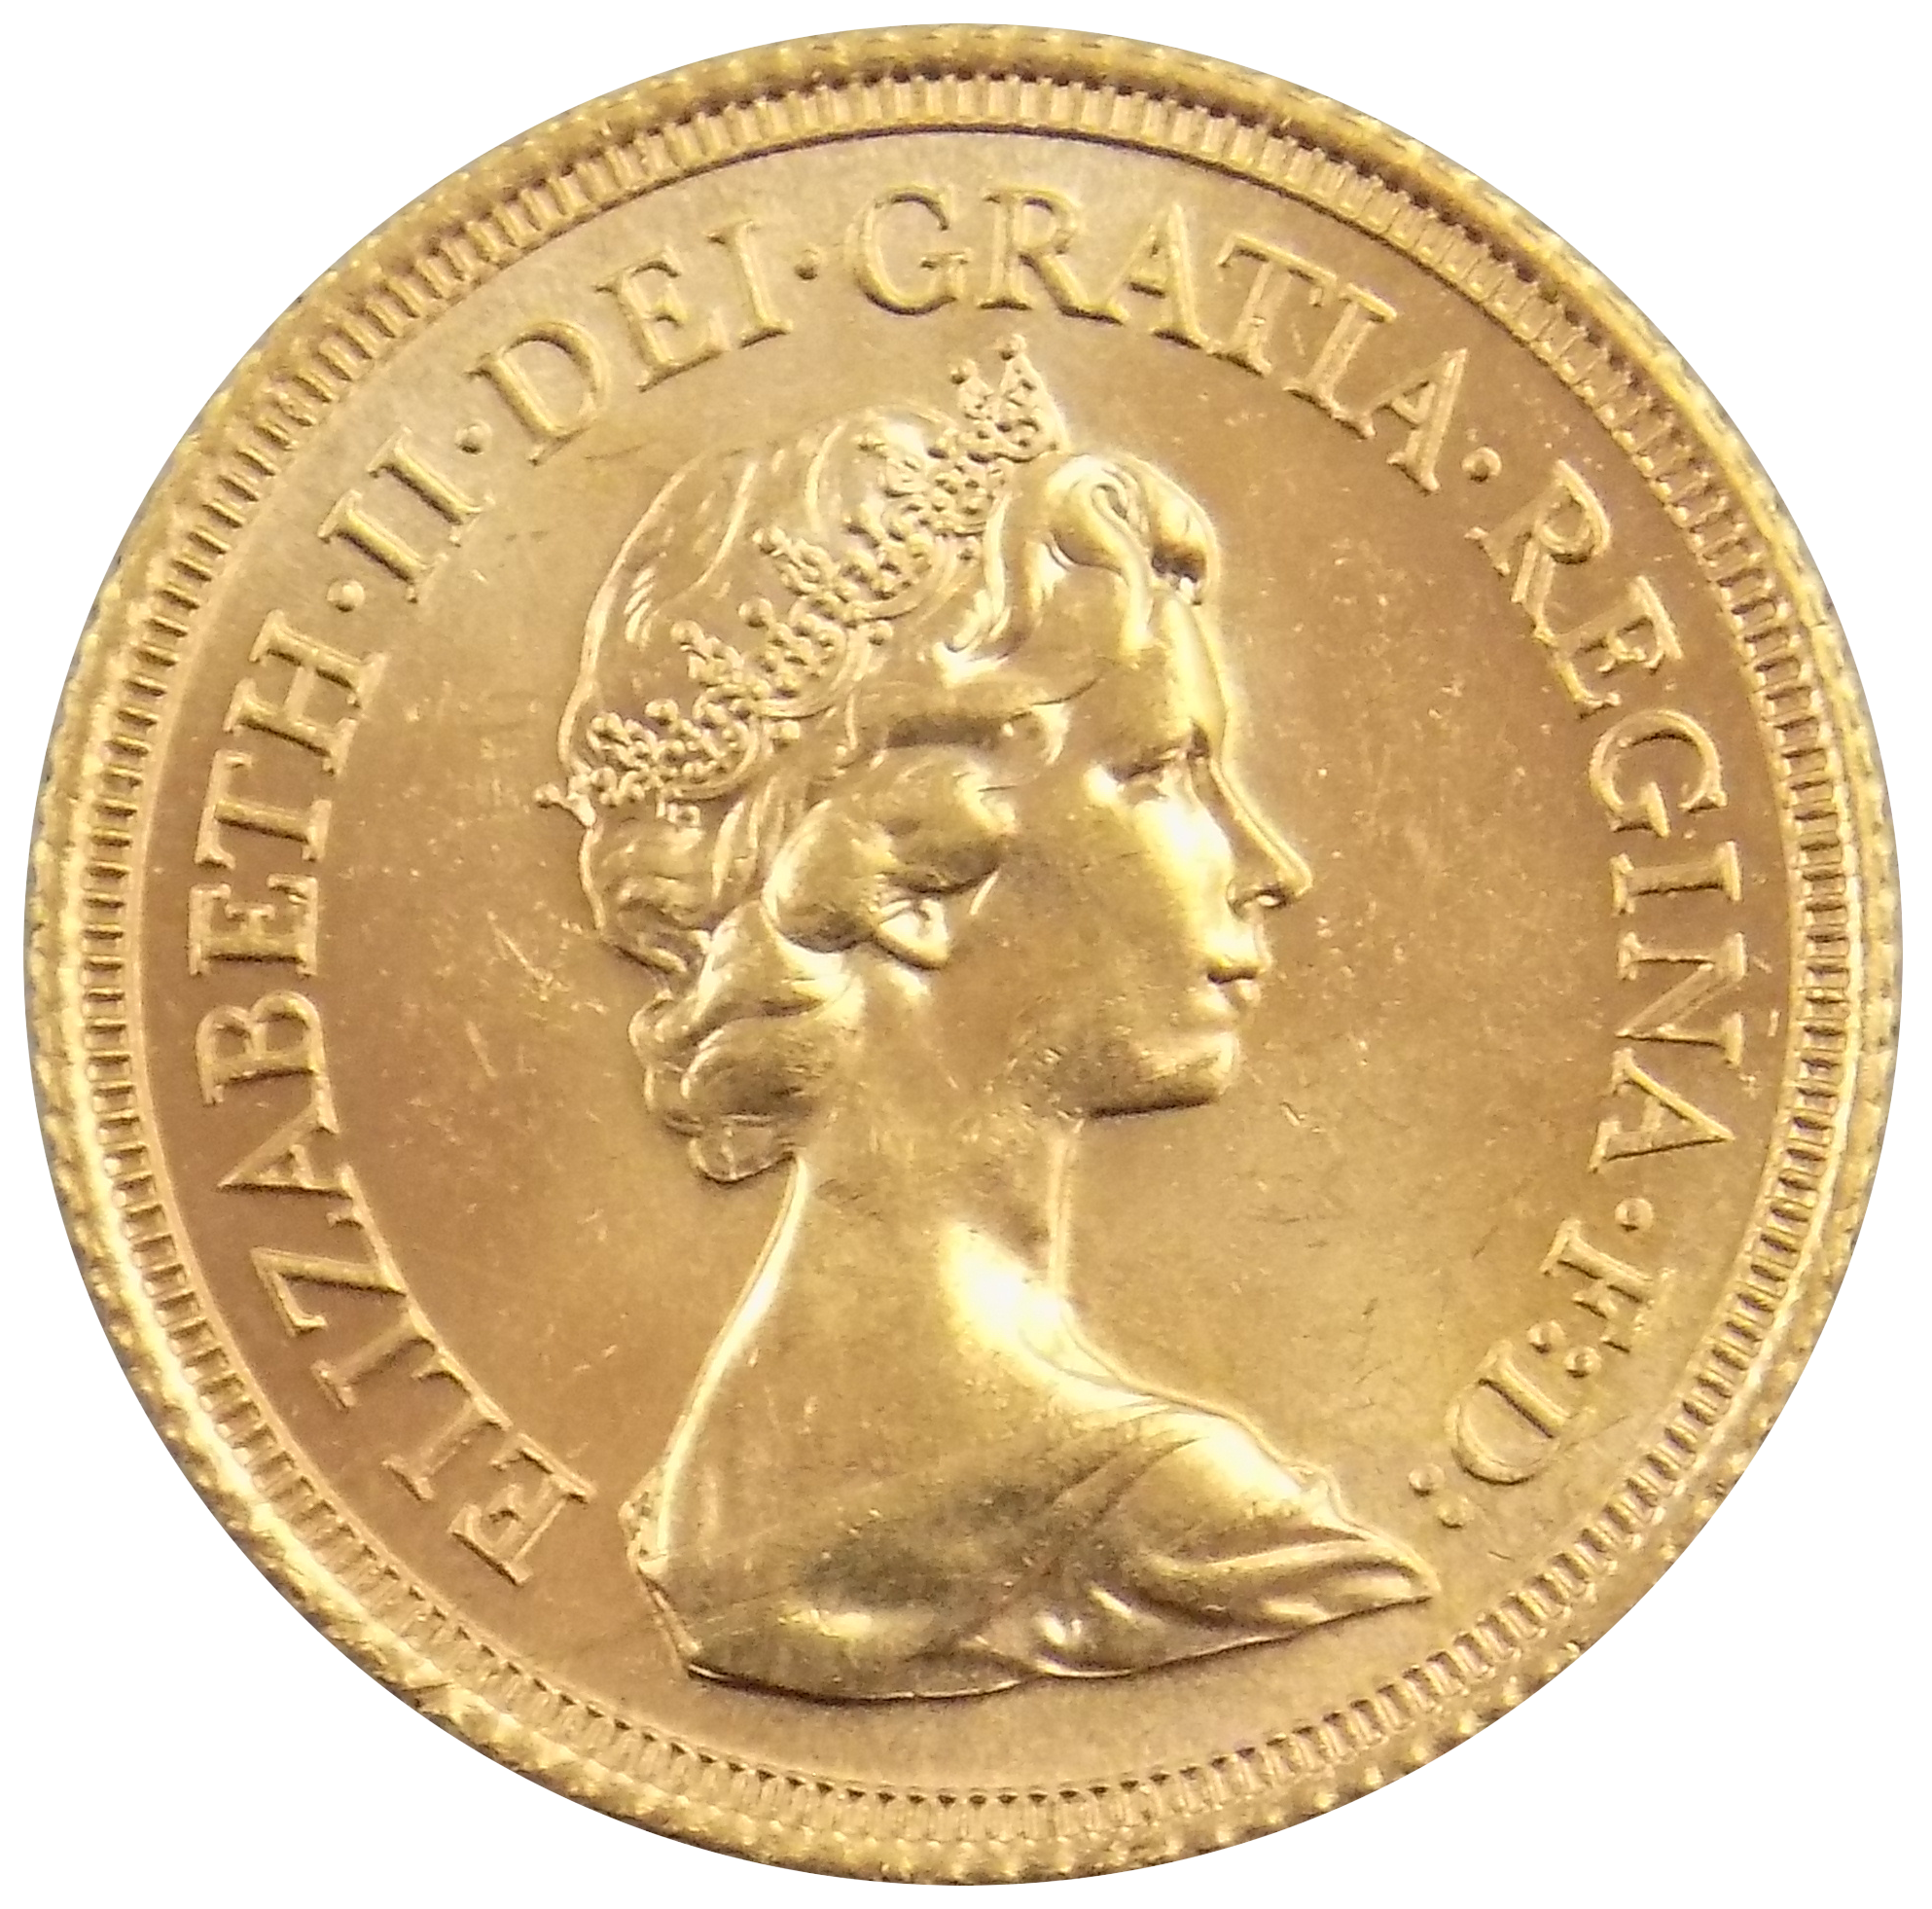 Pre-Owned 1978 UK Elizabeth II Full Sovereign Gold Coin